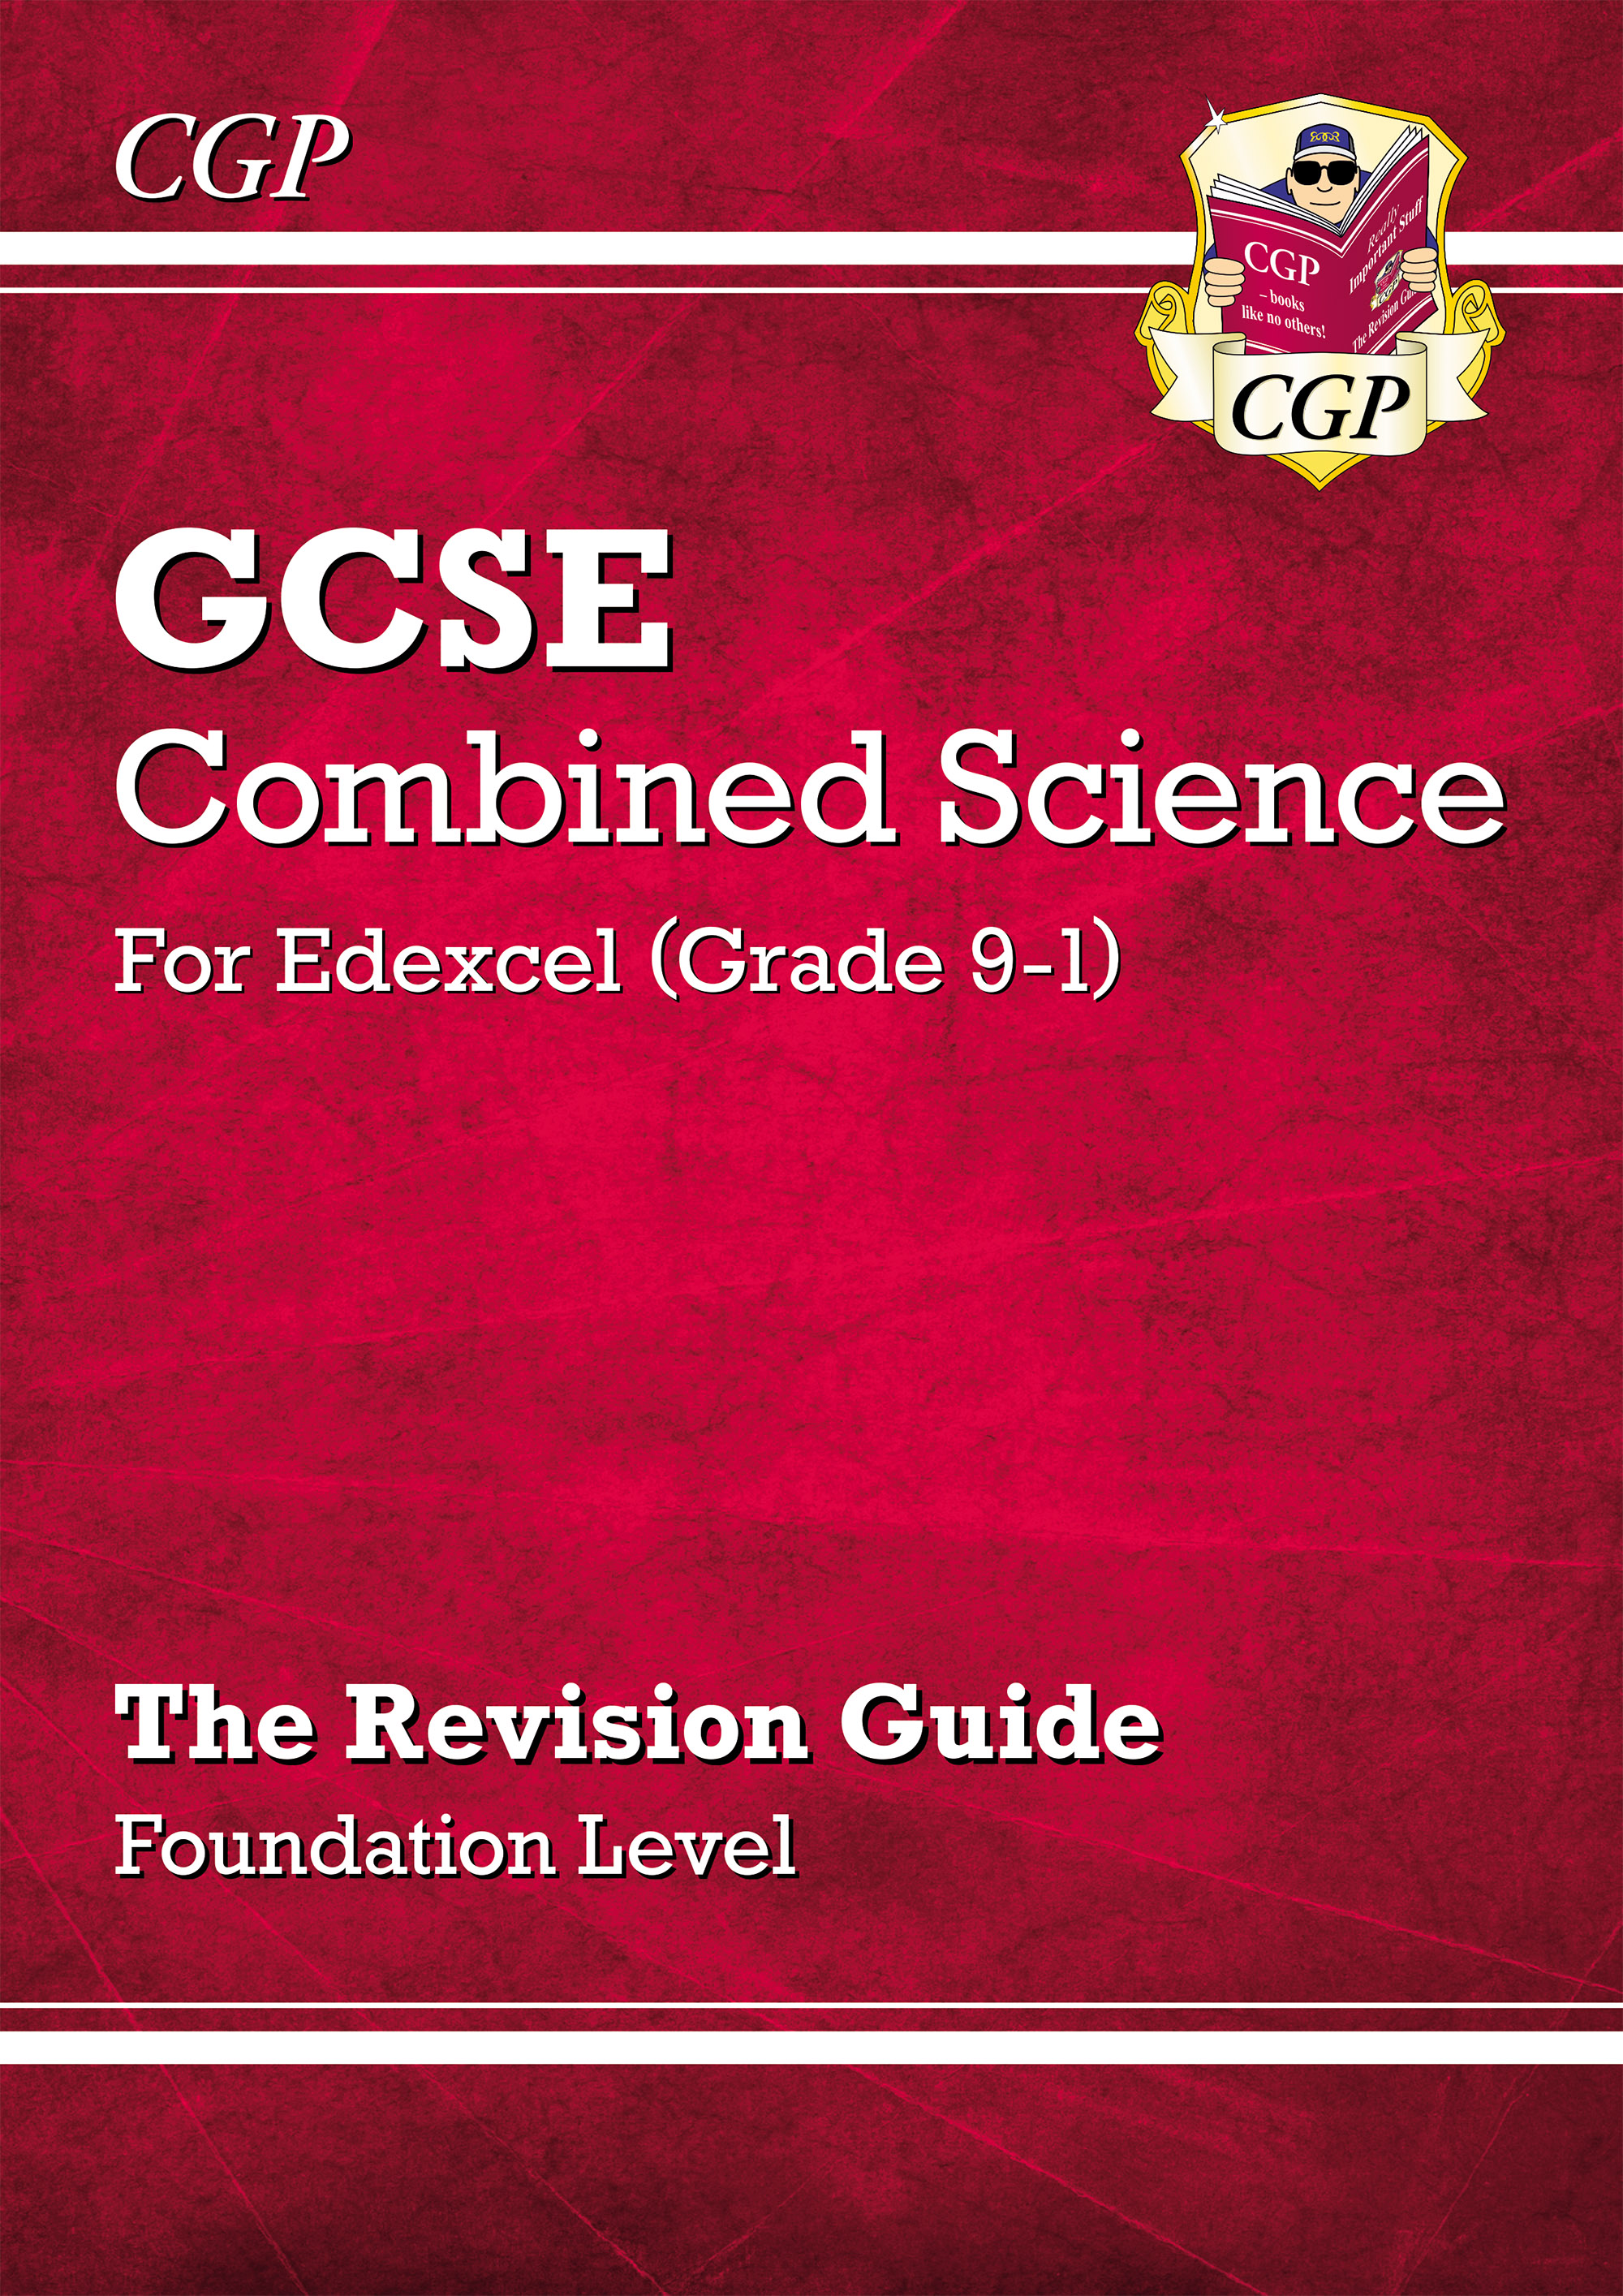 SEFR45D - Grade 9-1 GCSE Combined Science: Edexcel Revision Guide - Foundation (Online Edition)